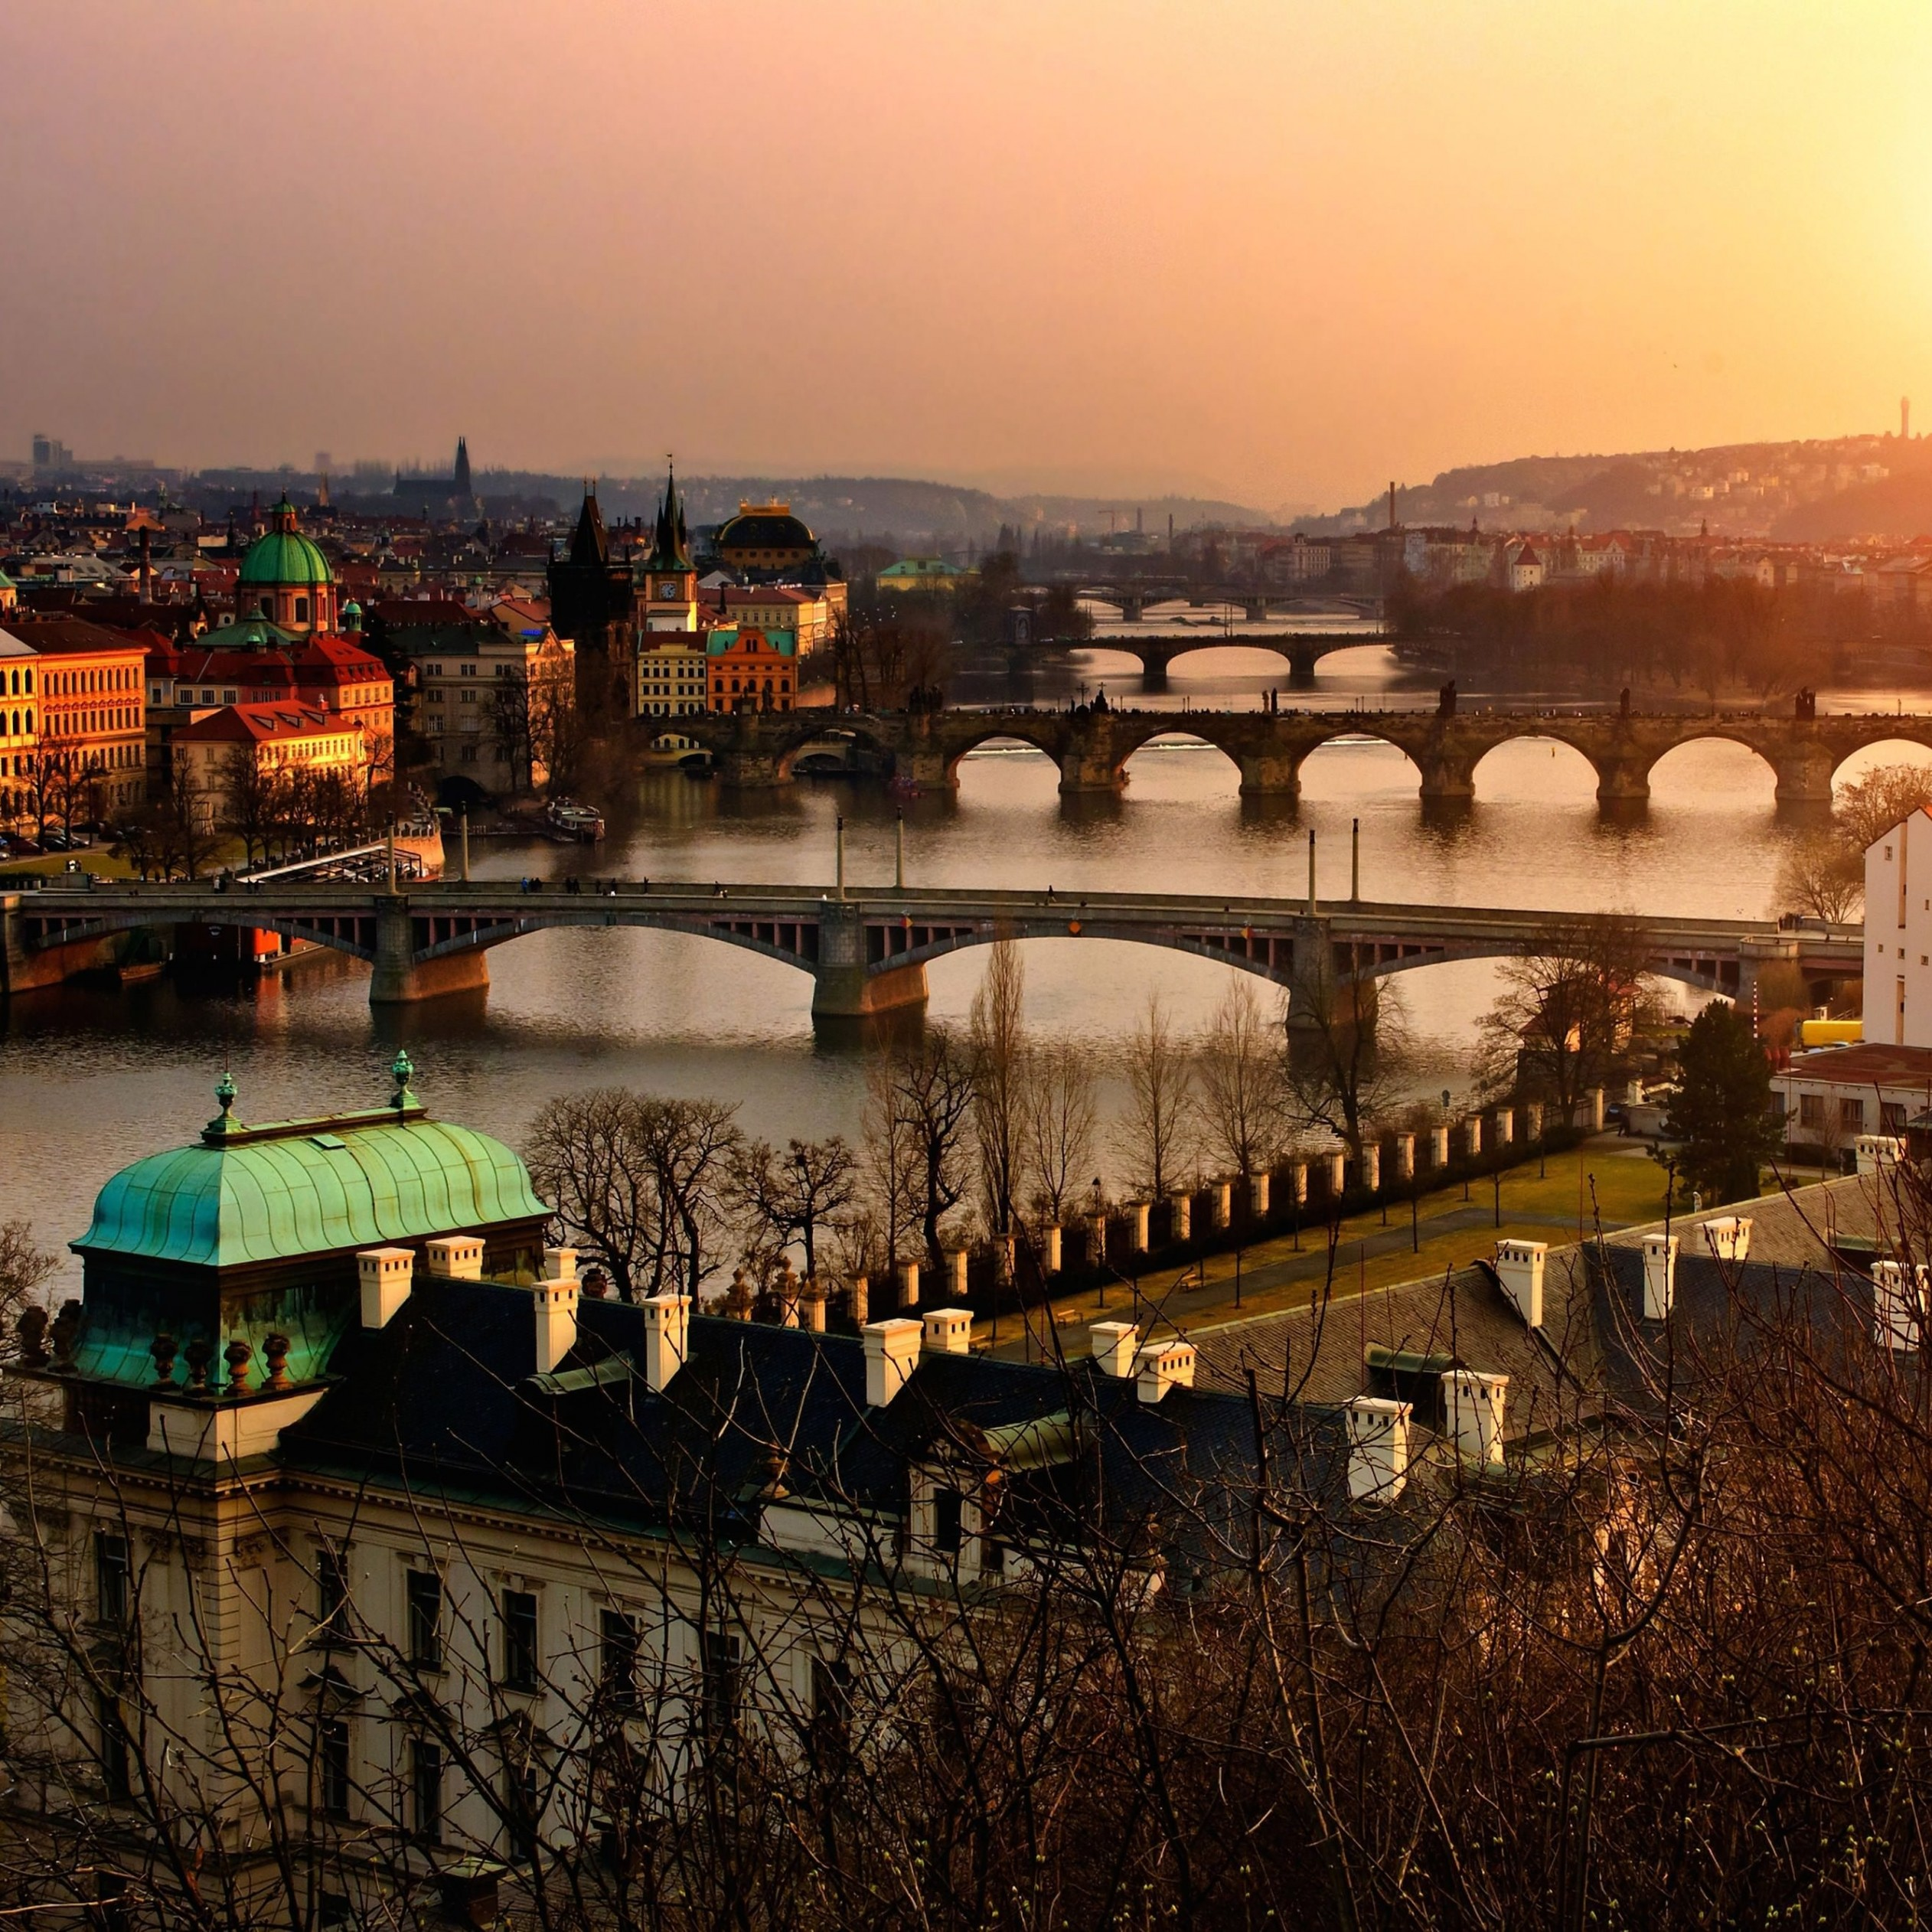 Vltava River in Prague Wallpaper for Apple iPad Air